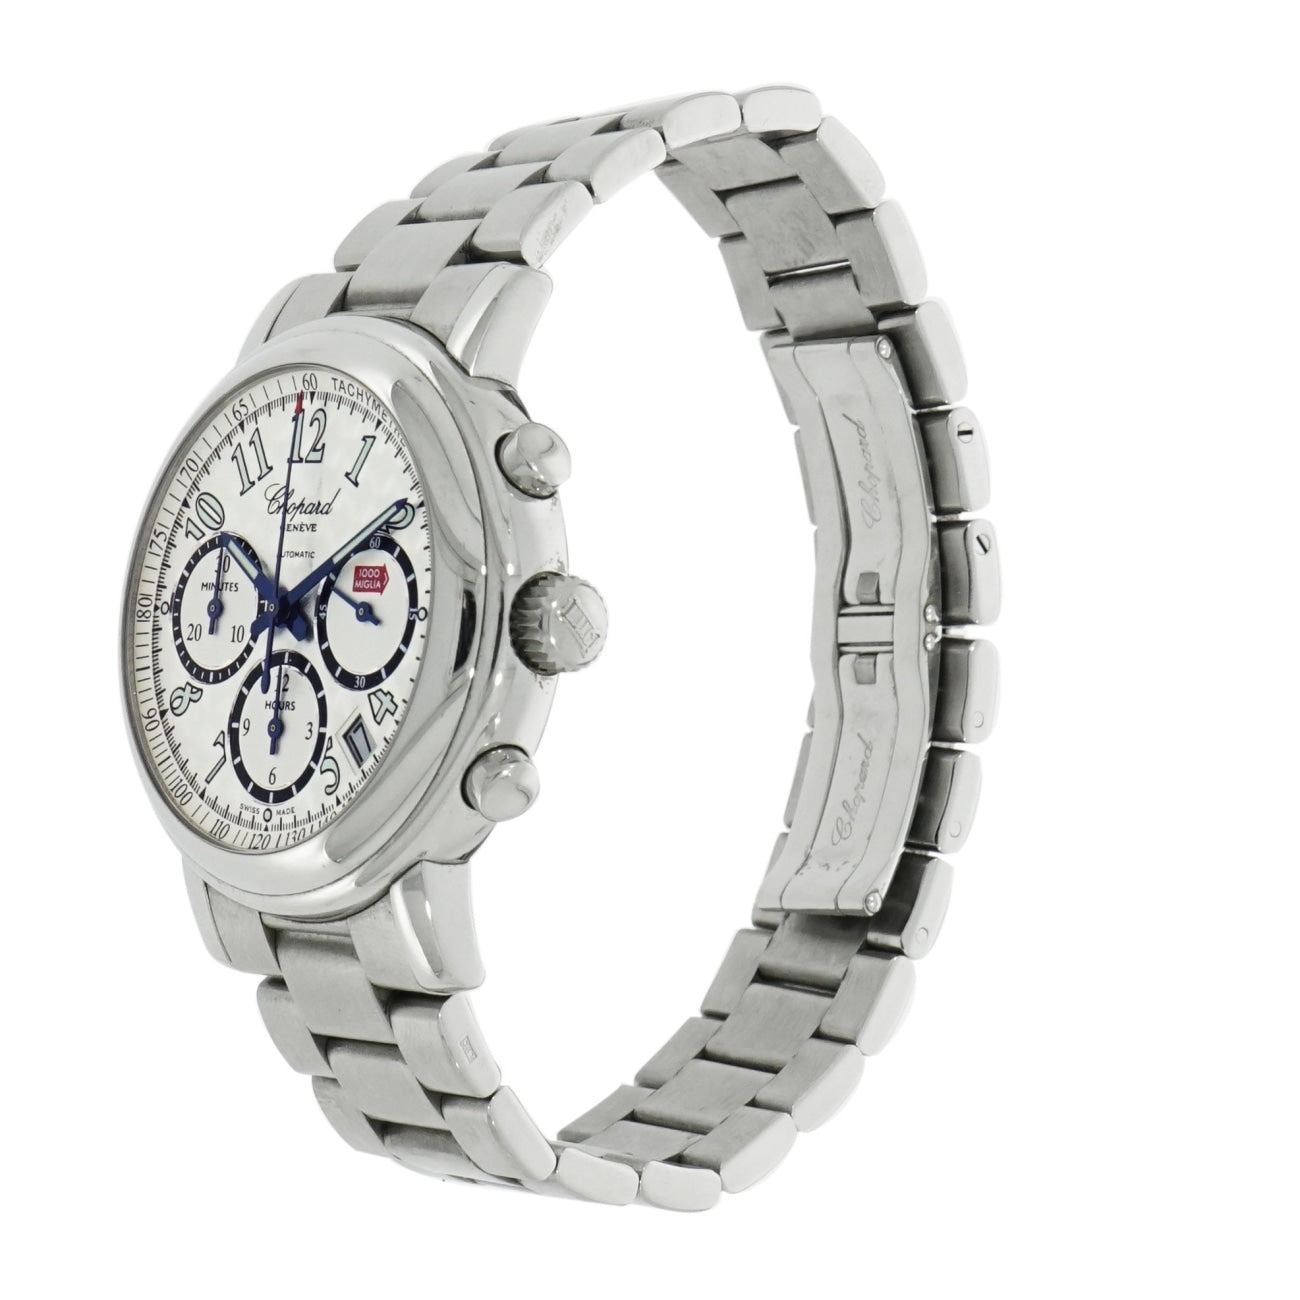 Pre-Owned Chopard Watches - Chopard Mille Miglia Chronograph in Stainless Steel | Manfredi Jewels